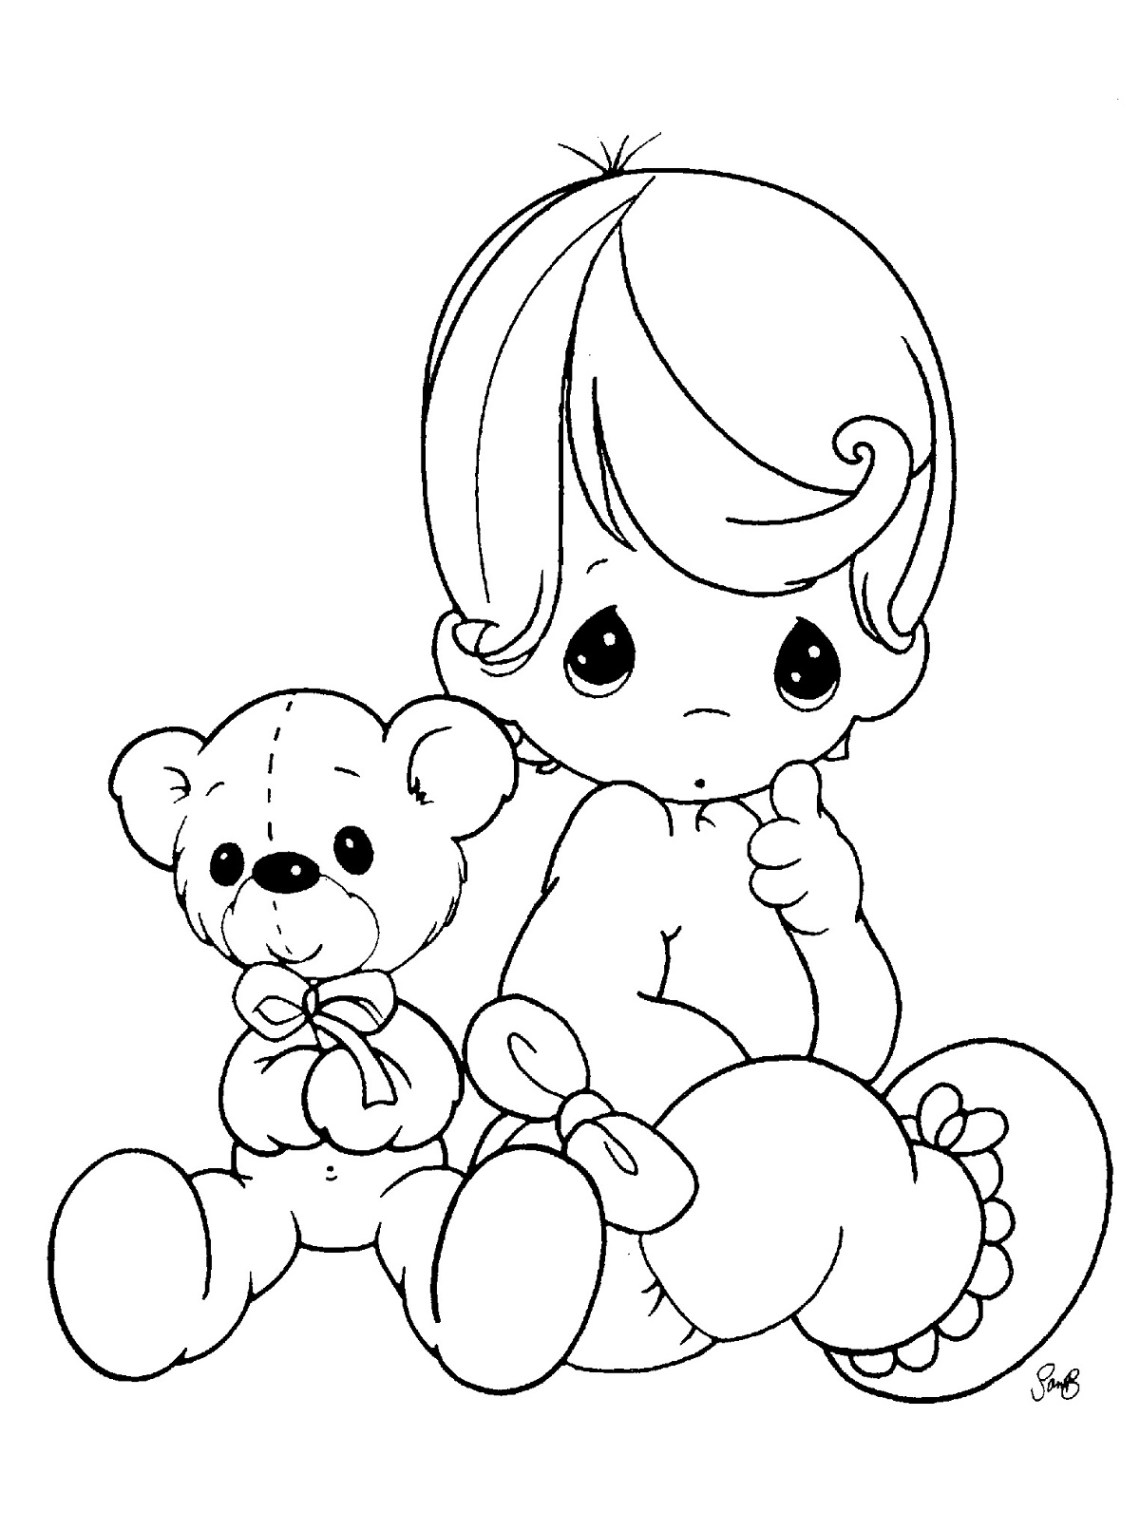 Free Printable Baby Coloring Pages For Kids | free colouring pages for toddlers